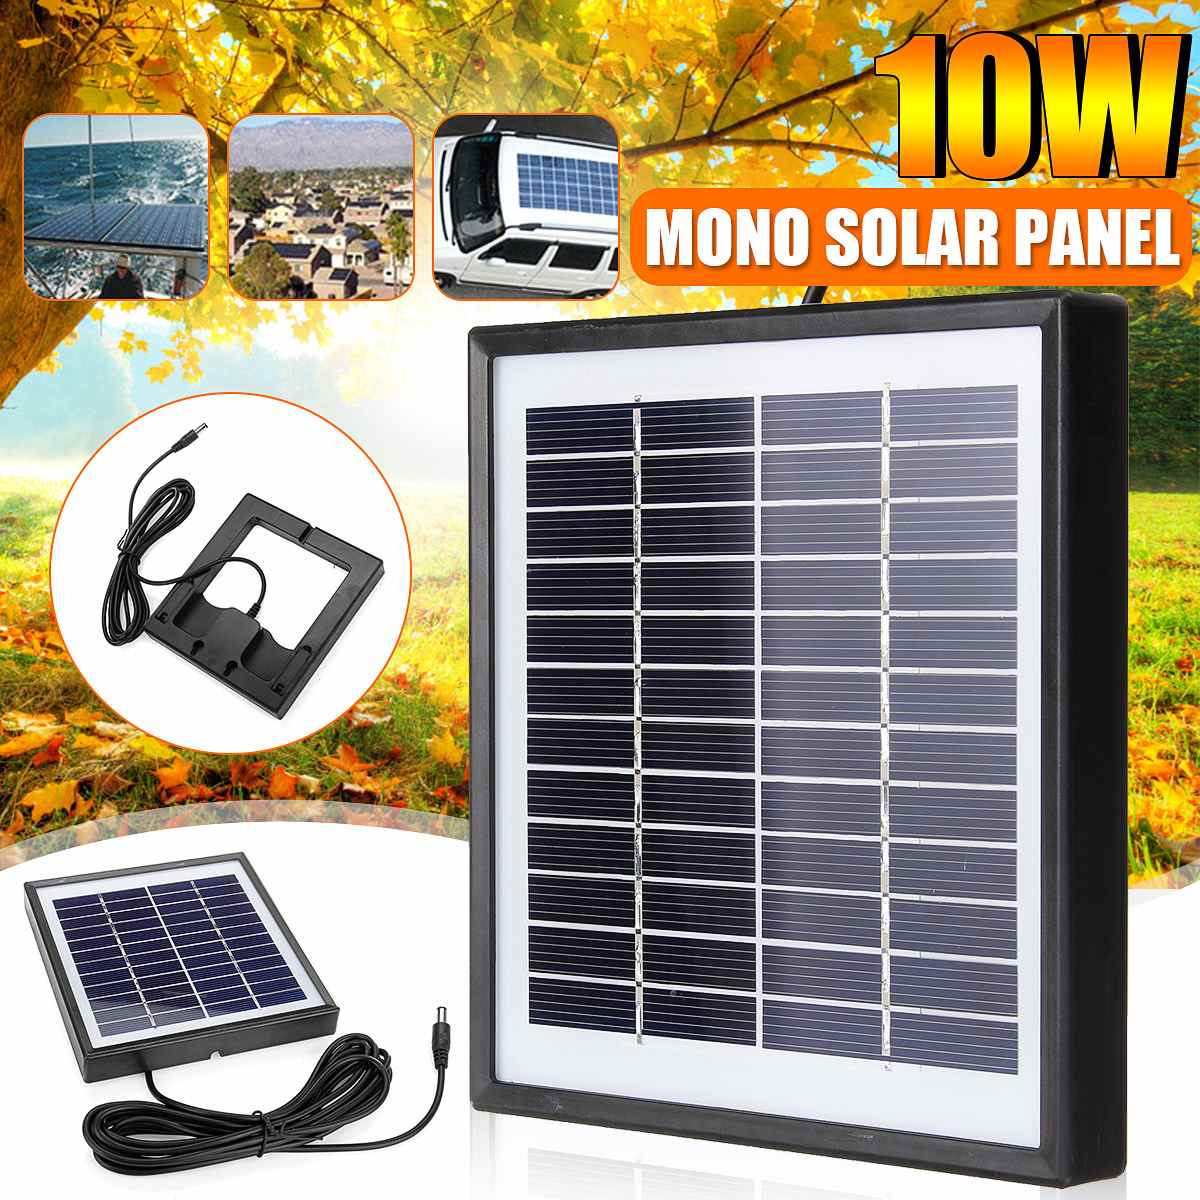 12V 10W Polysilicon Solar Panel Battery Charger For Street Light Outdoor Light Surveillance Camera Car RV Boat